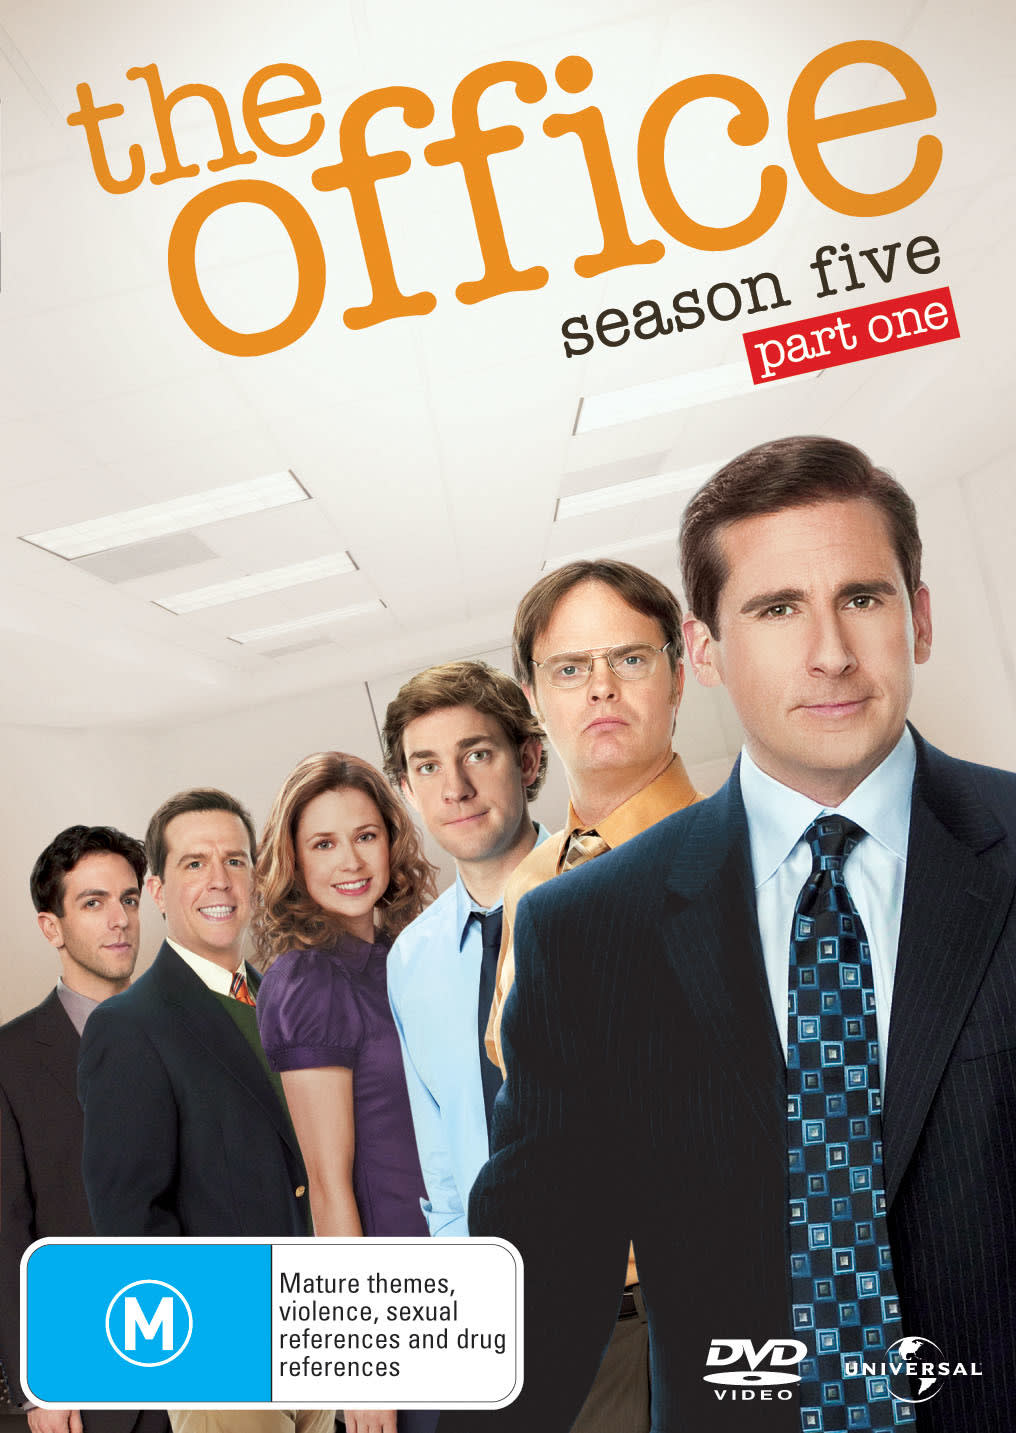 The Office - An American Workplace: Season Five, Part One [DVD]